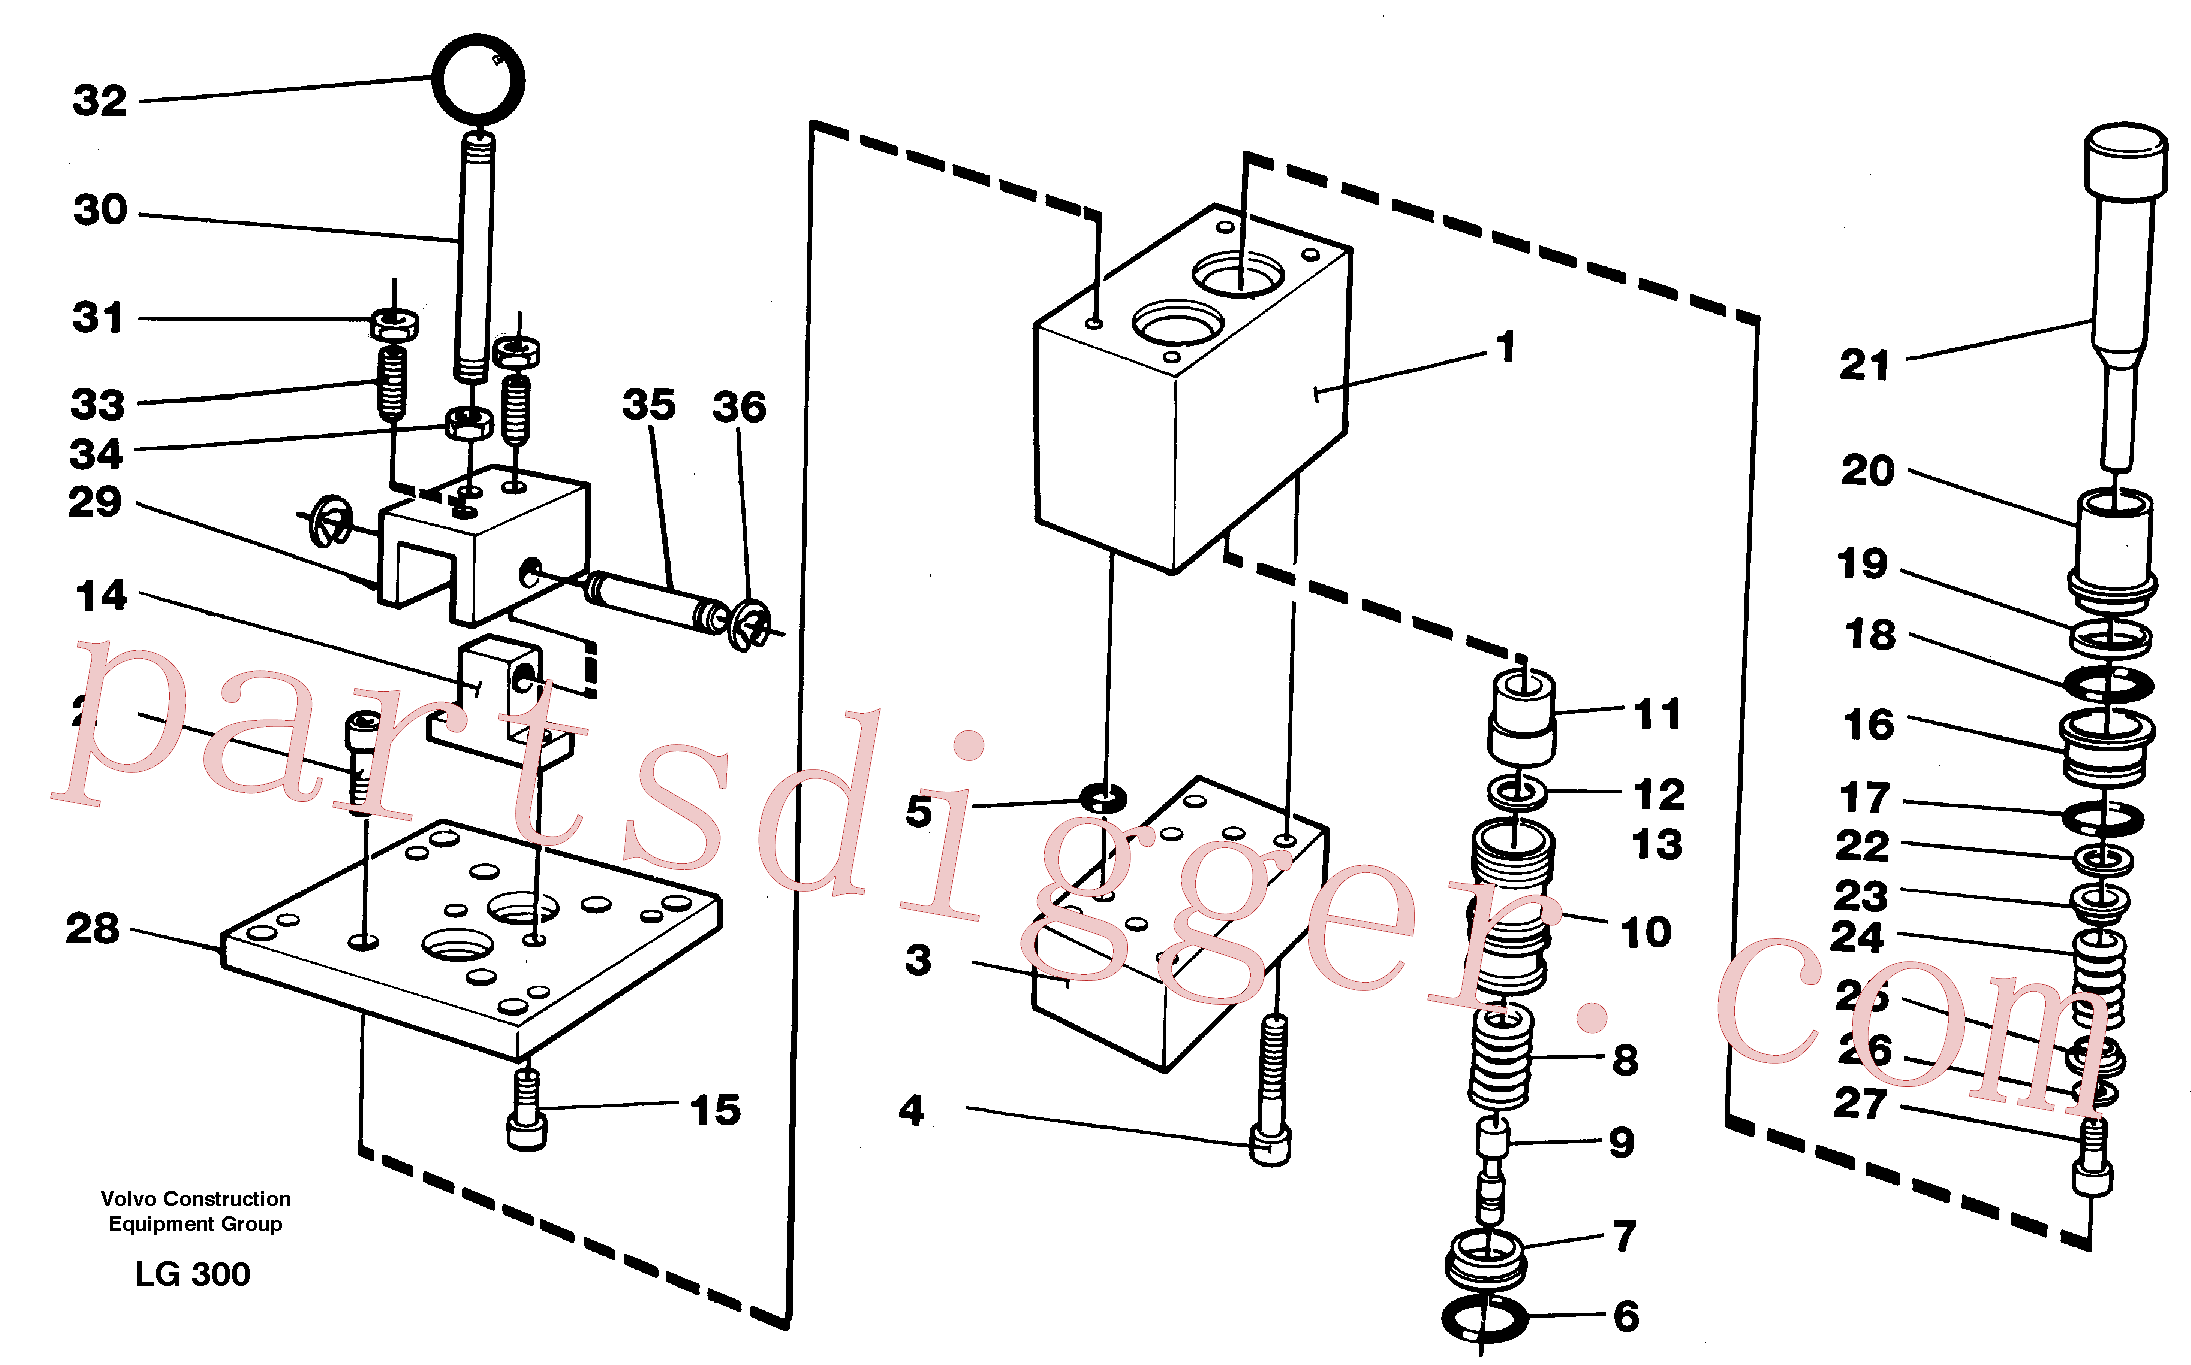 VOE14243100 for Volvo Control pressure valve(LG300 assembly)